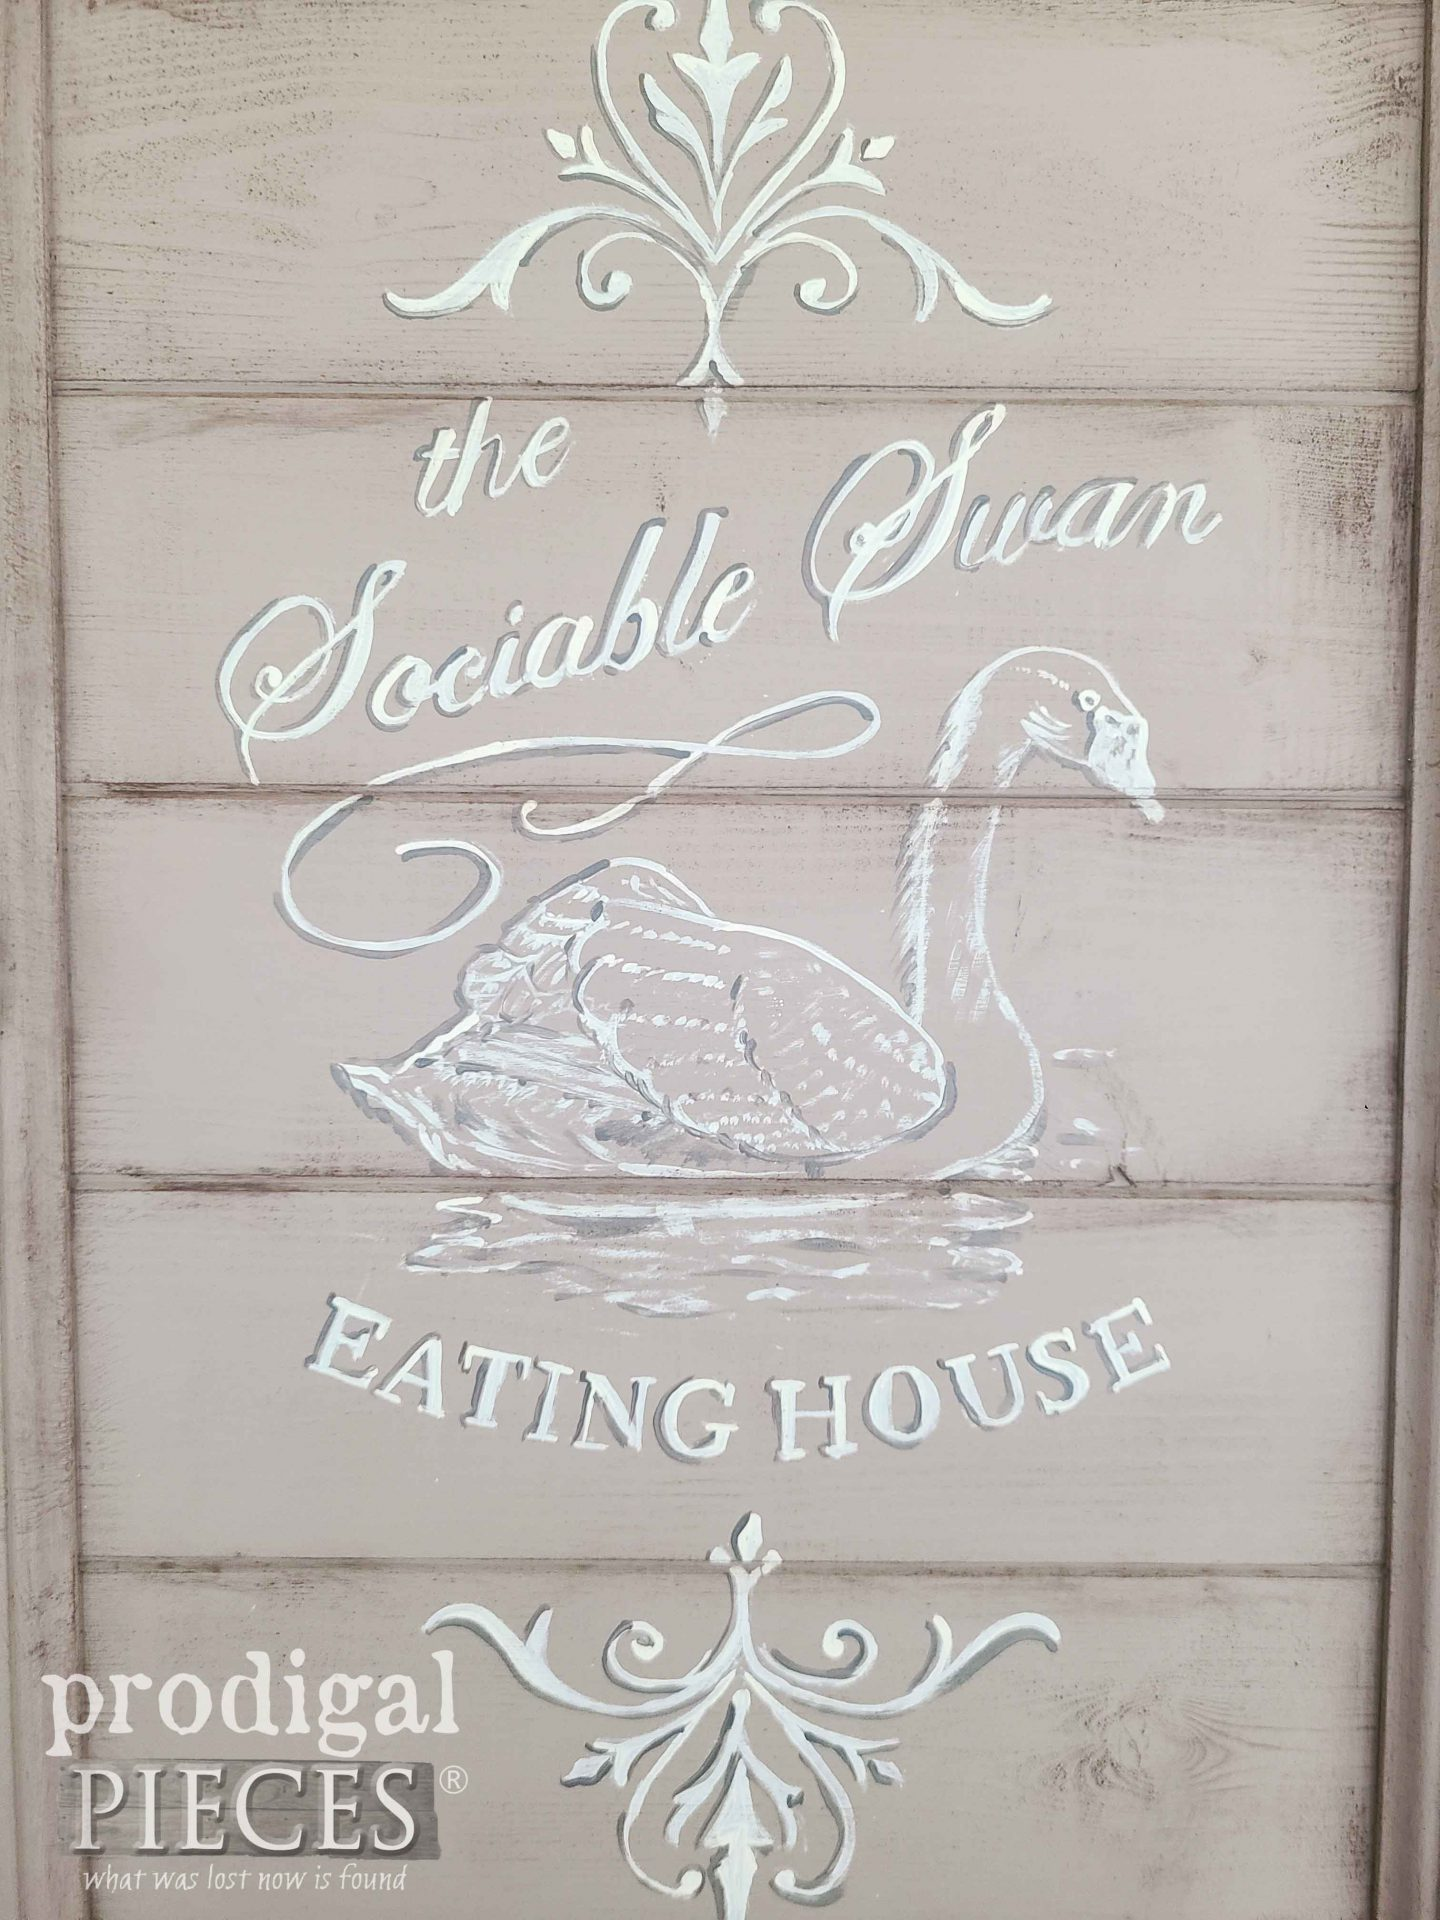 Hand-Painted Typography on Wall Cabinet | prodigalpieces.com #prodigalpieces #diy #farmhouse #art